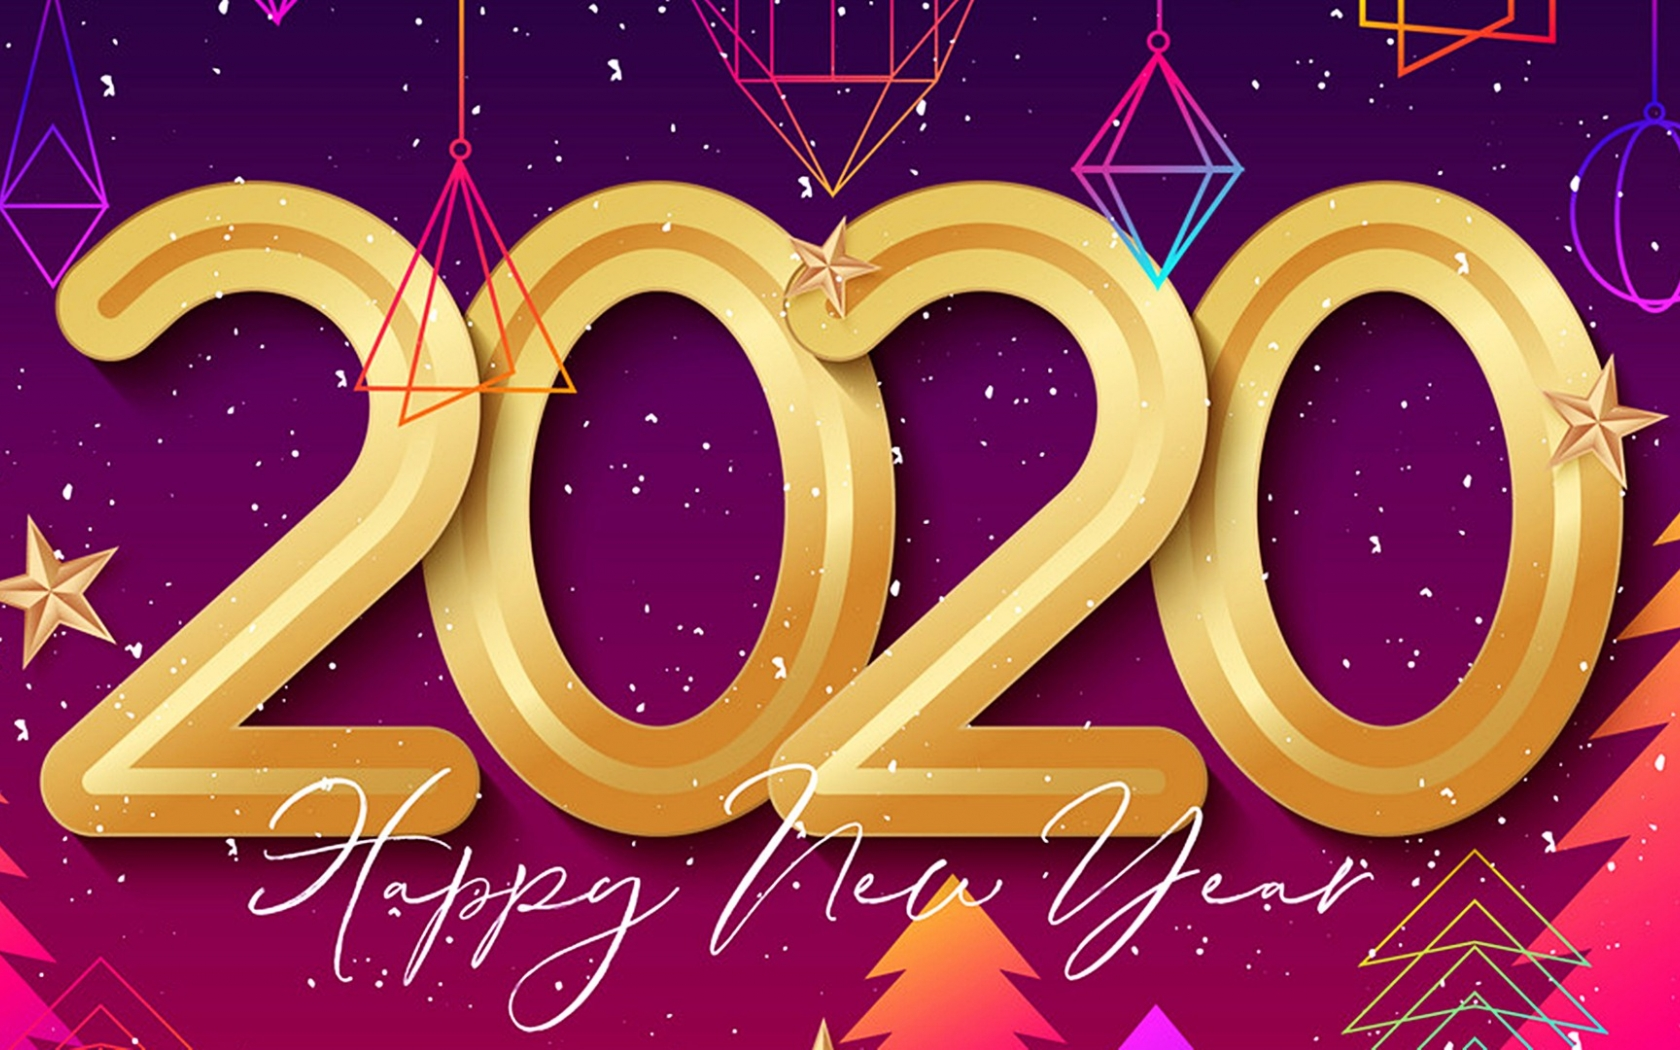 download Happy New Year 2020 Best HD Wallpaper 45543 Baltana 1680x1050